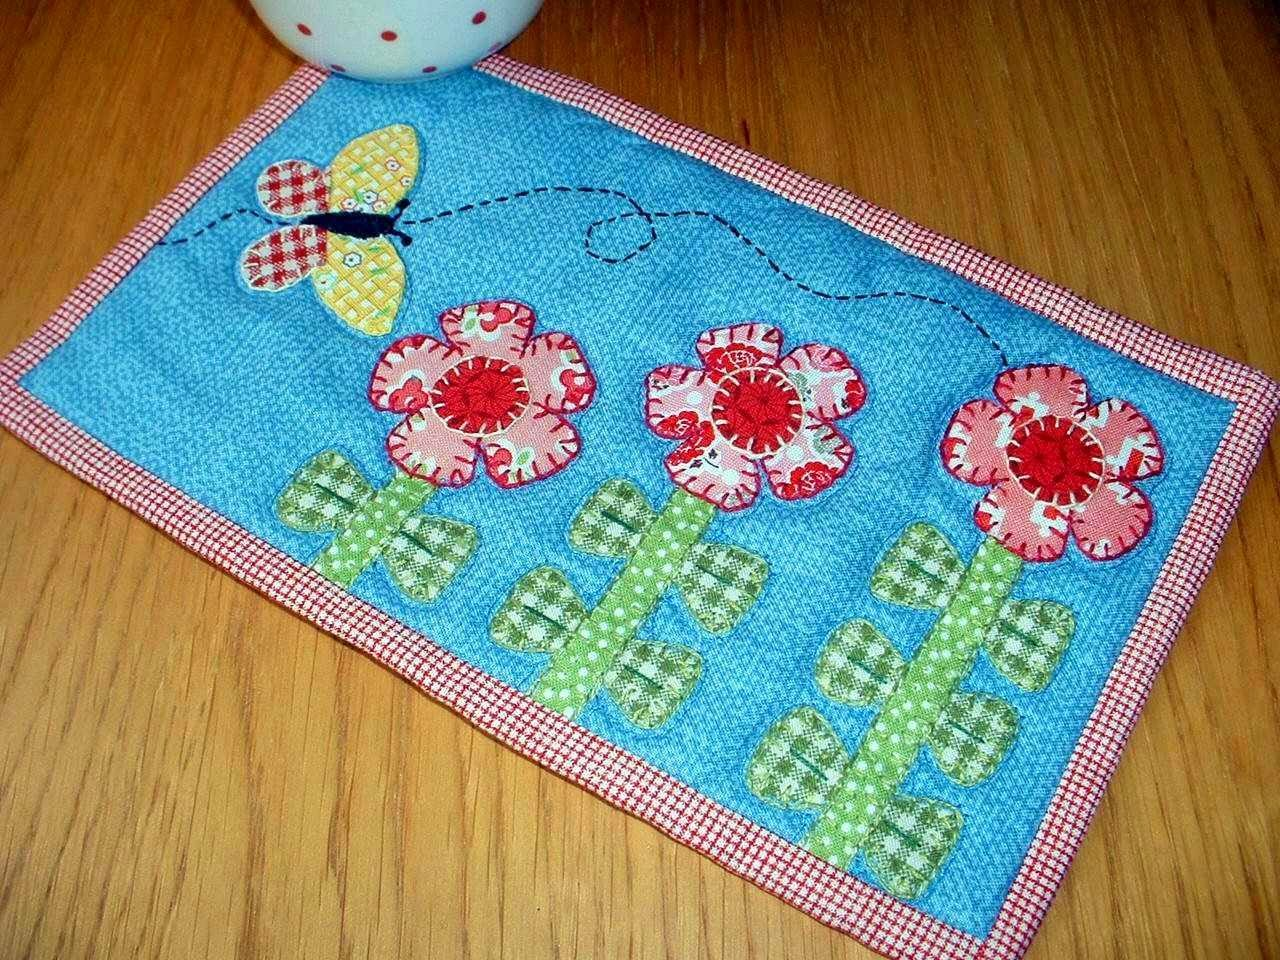 http://www.craftsy.com/pattern/quilting/home-decor/growing-flowers-mug-rug/47635